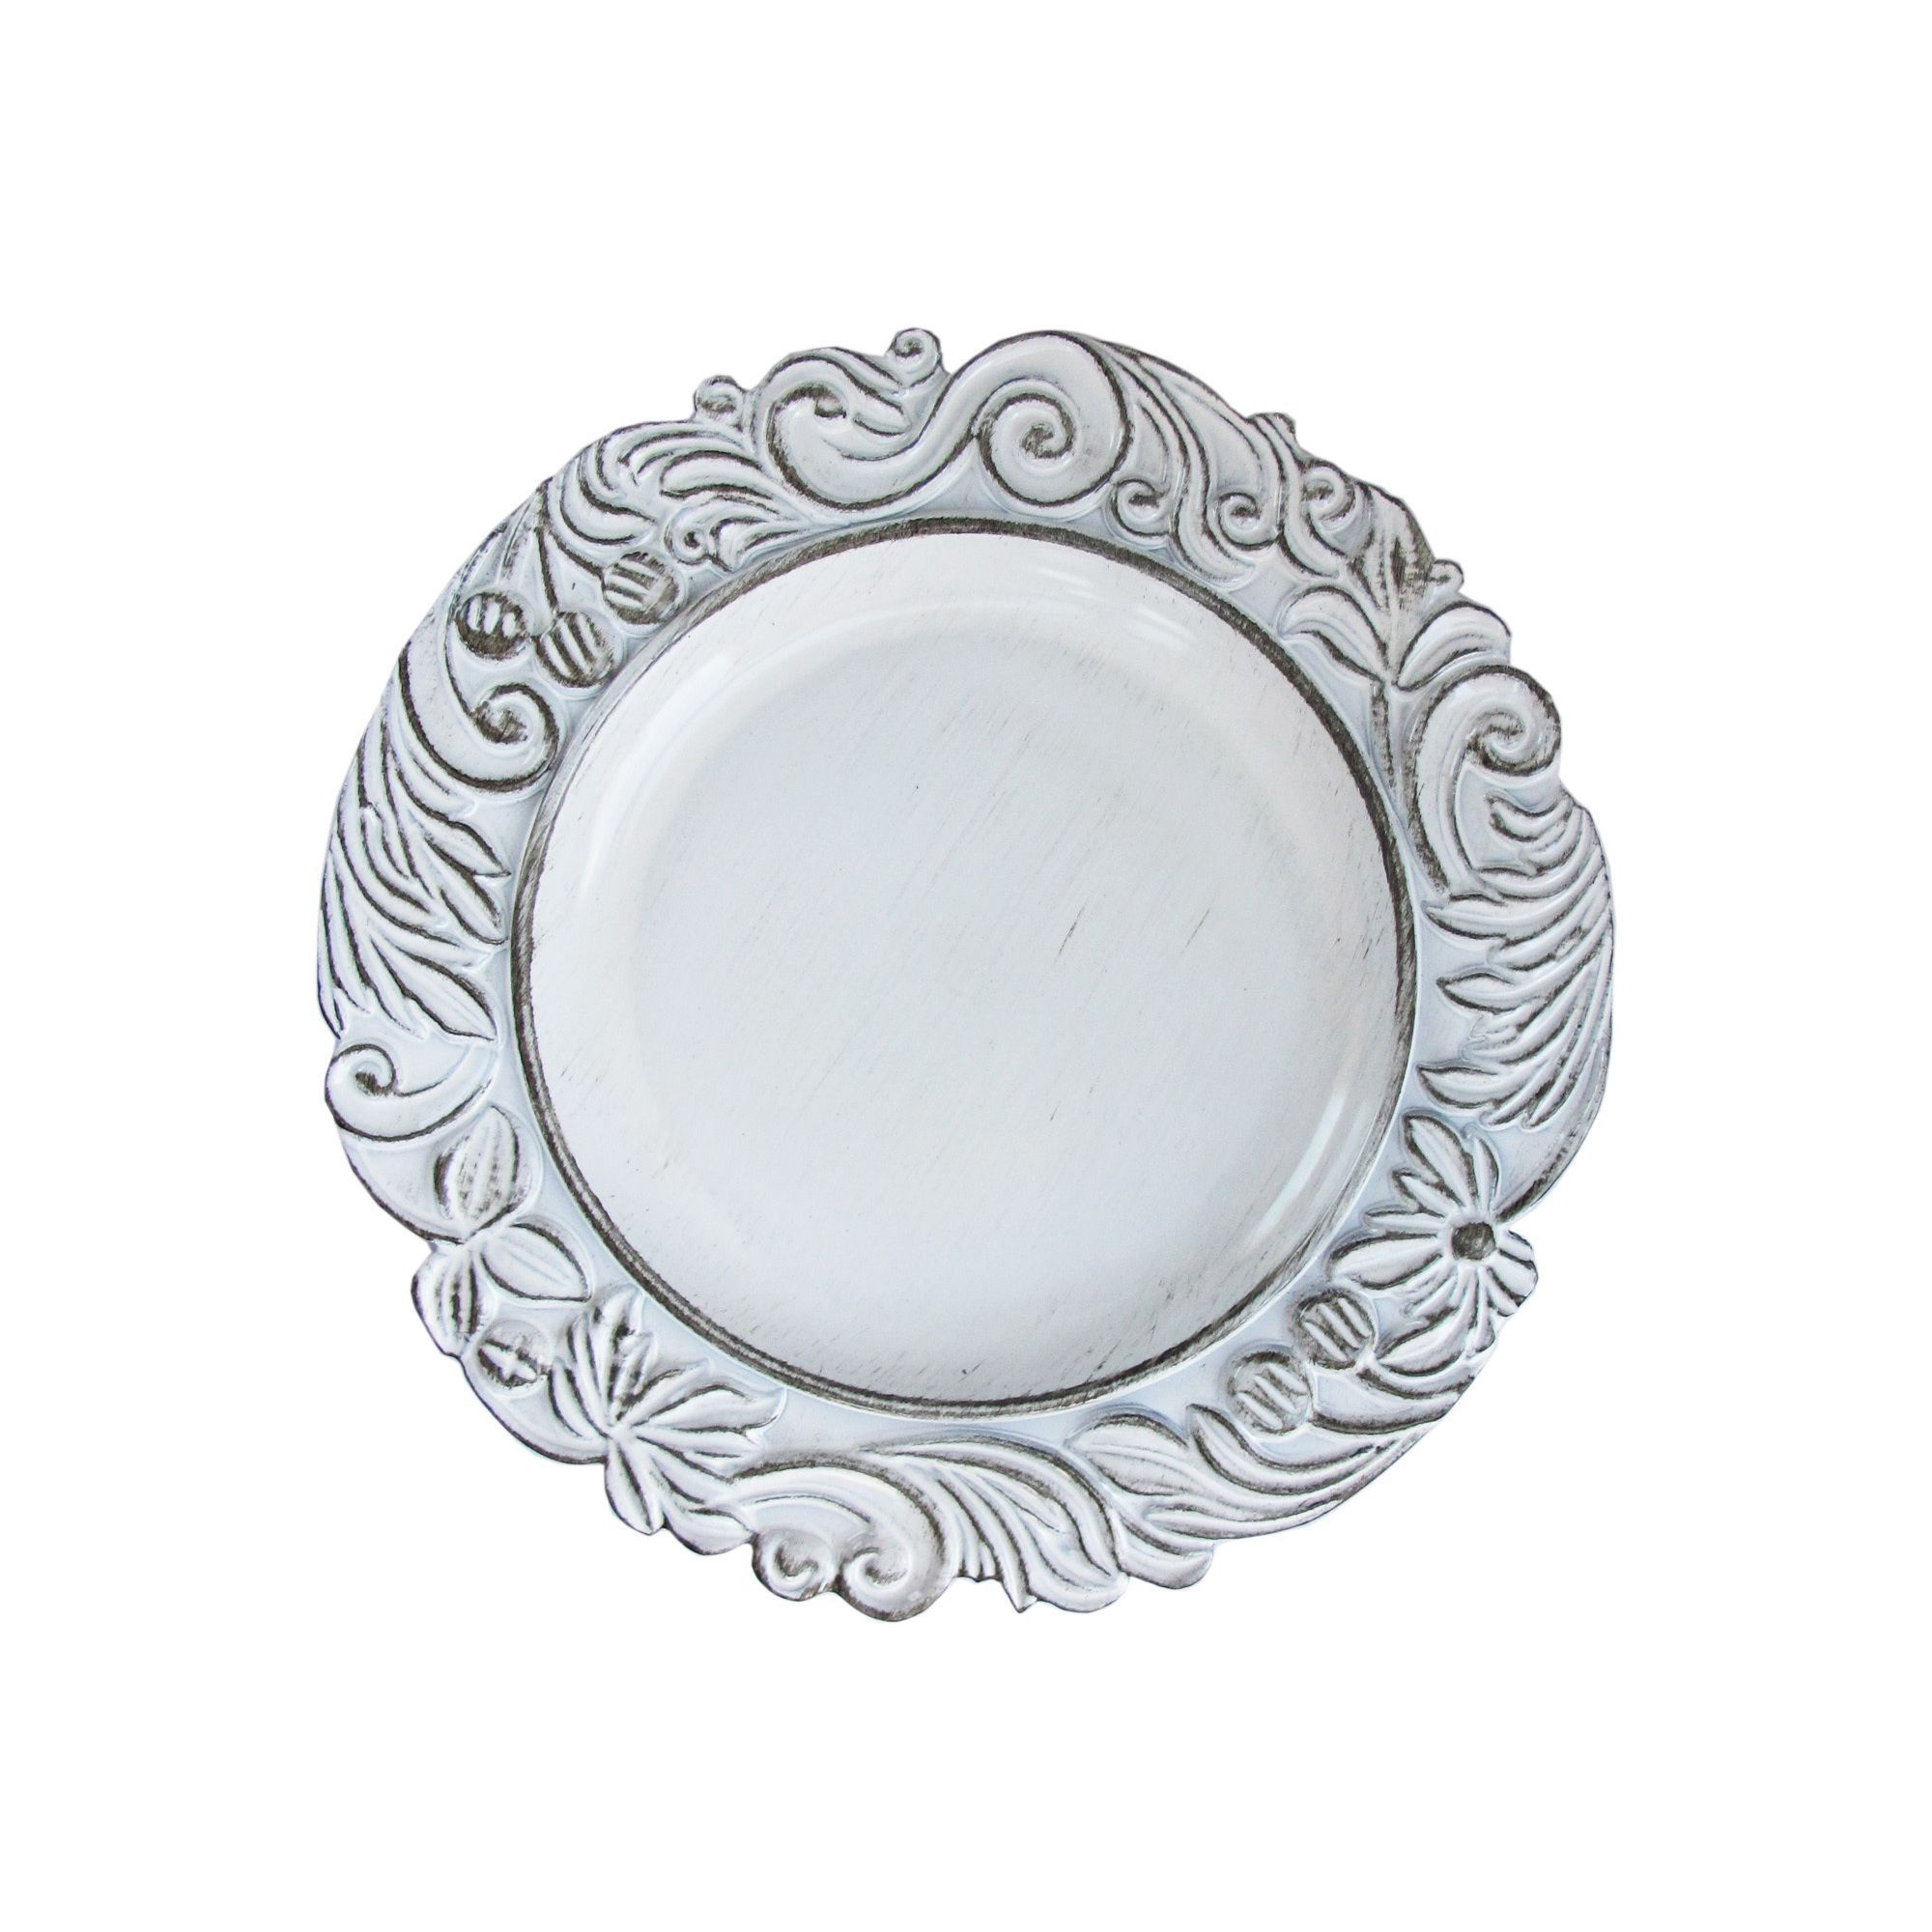 By Jay Aristocratic White Antique 14-inch Charger Plate (Aristocratic White Antique  sc 1 st  Pinterest & ChargeIt! By Jay Aristocratic White Antique 14-inch Charger Plate ...